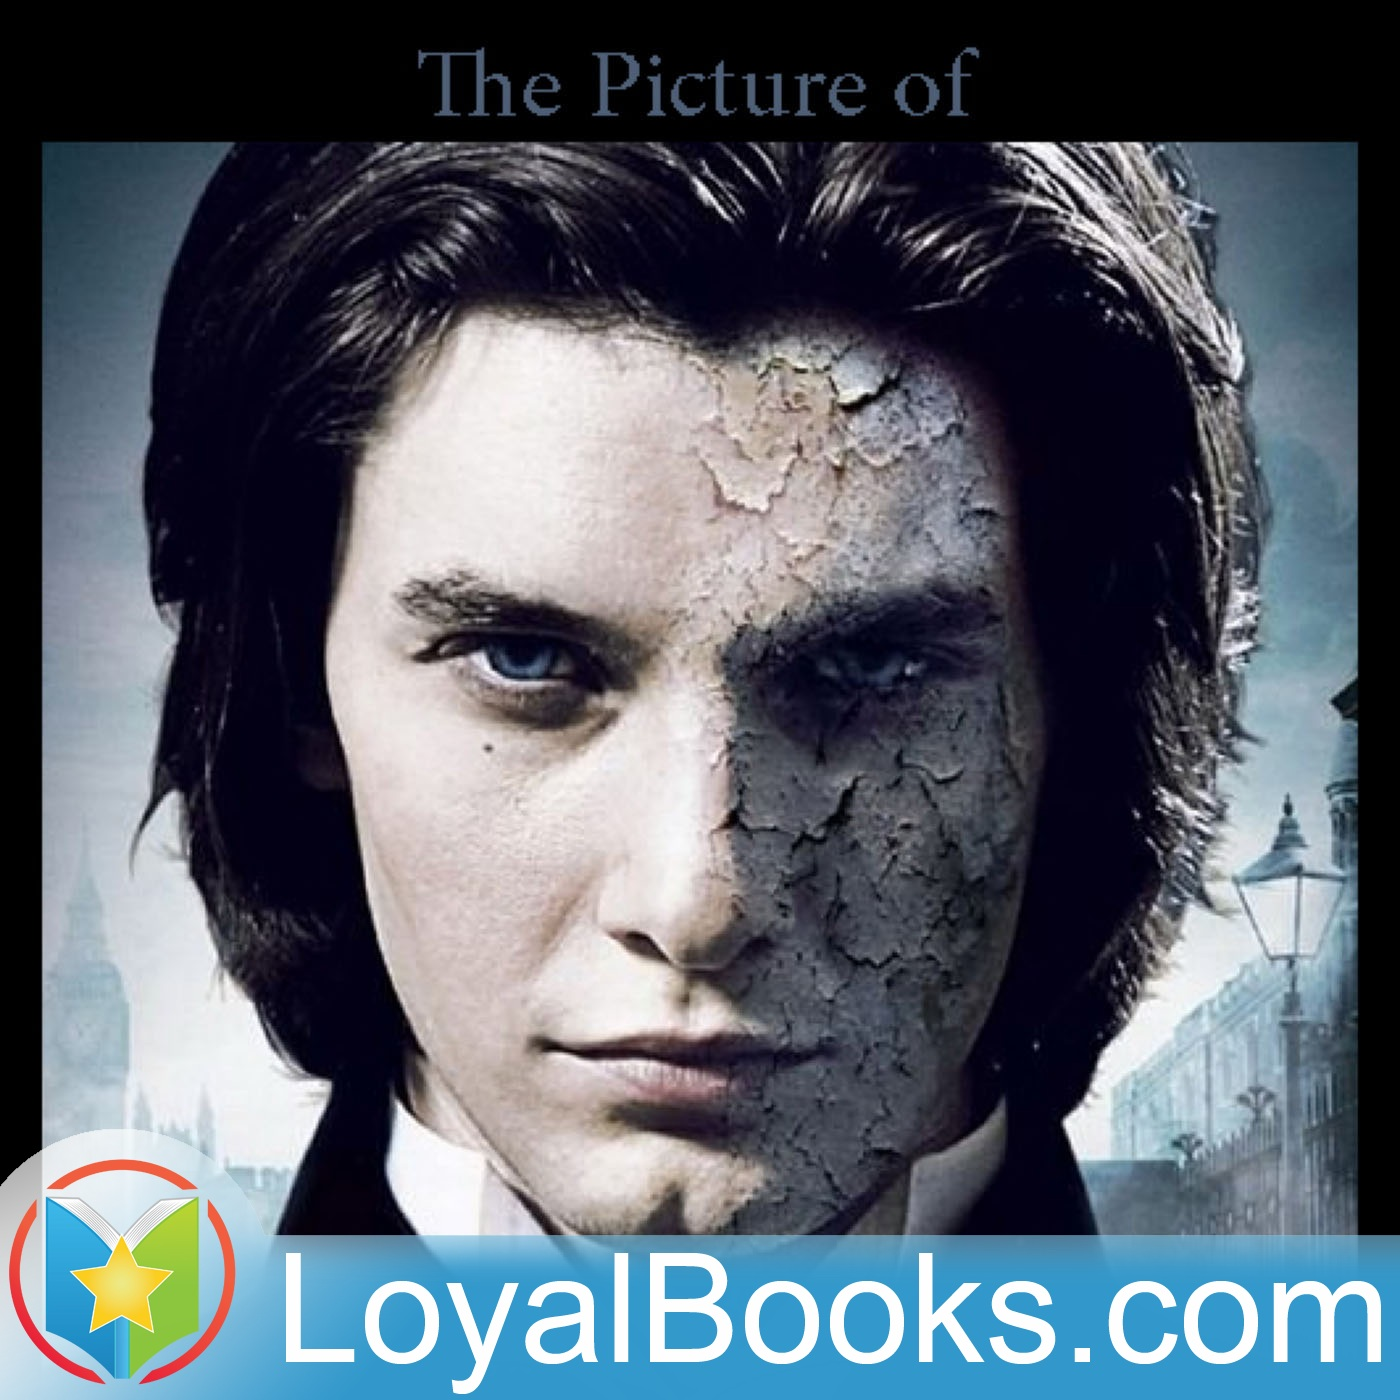 <![CDATA[The Picture of Dorian Gray by Oscar Wilde]]>